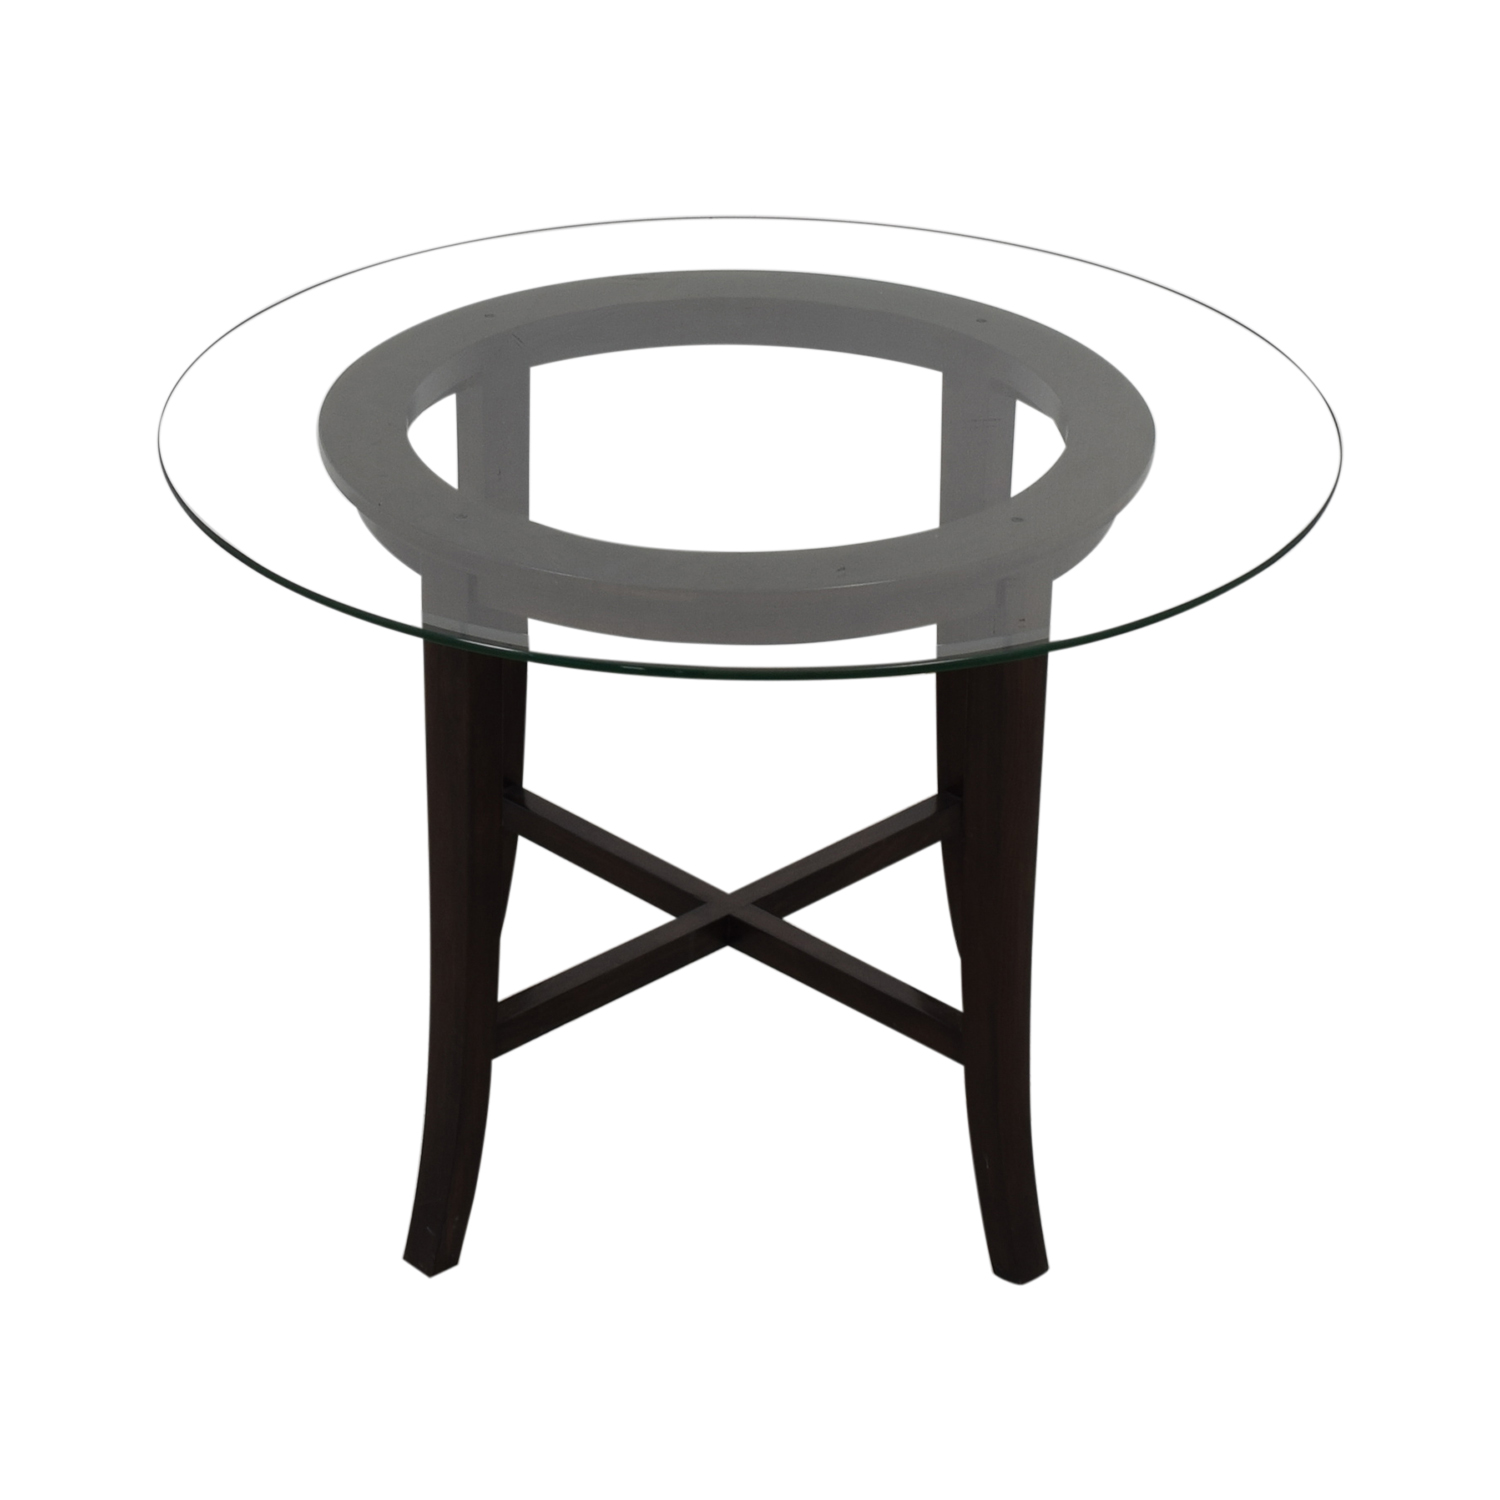 Crate & Barrel Crate & Barrel Halo Glass and Wood Dining Table on sale